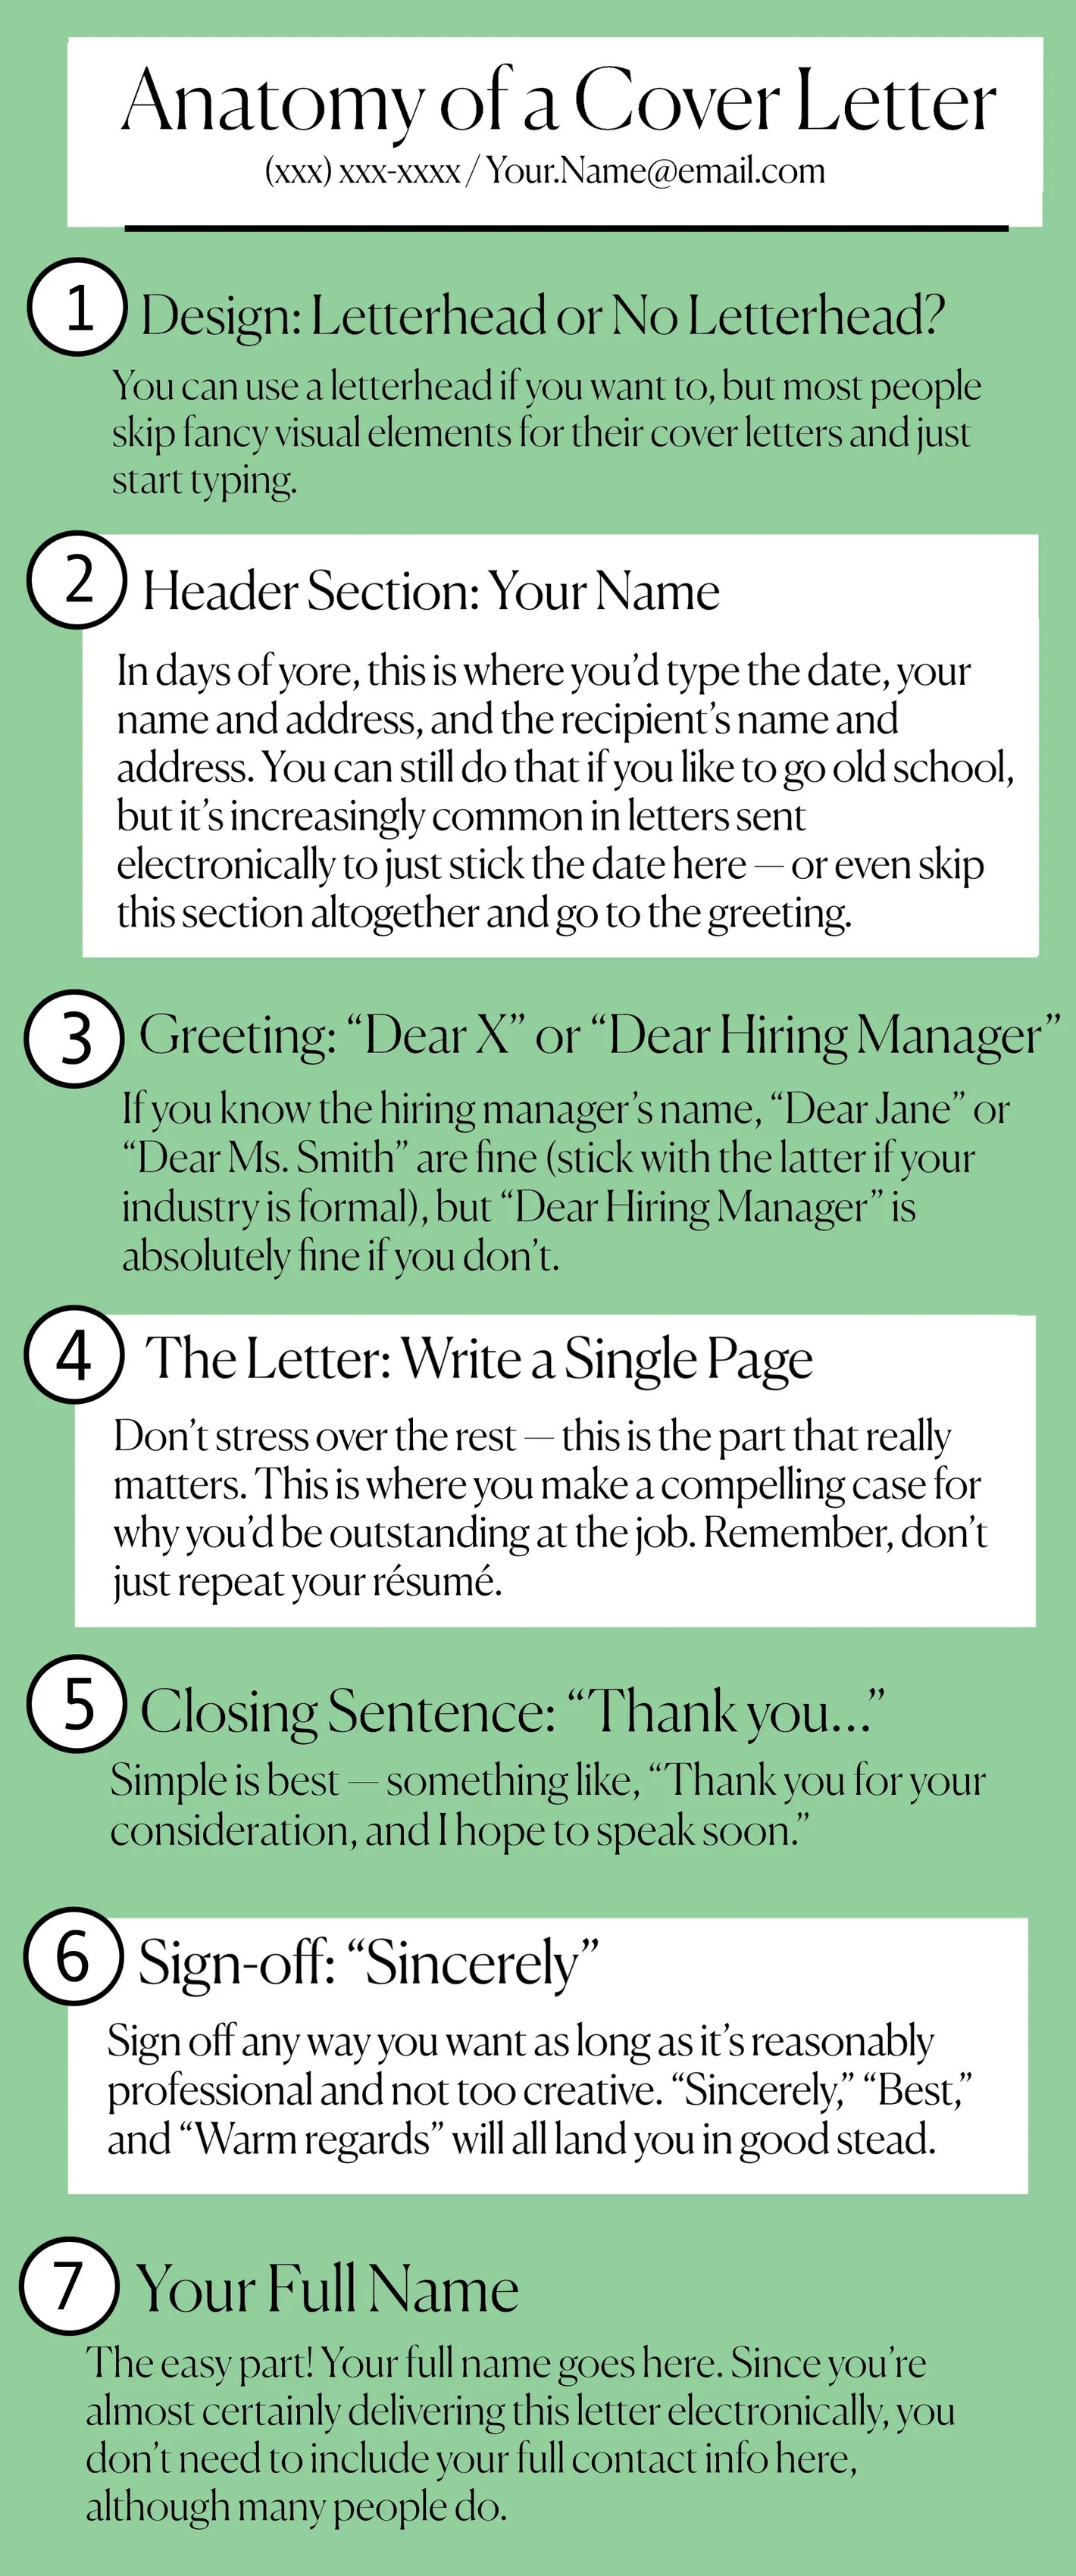 Change Of Status Cover Letter How To Write A Cover Letter Step By Step Tips Examples